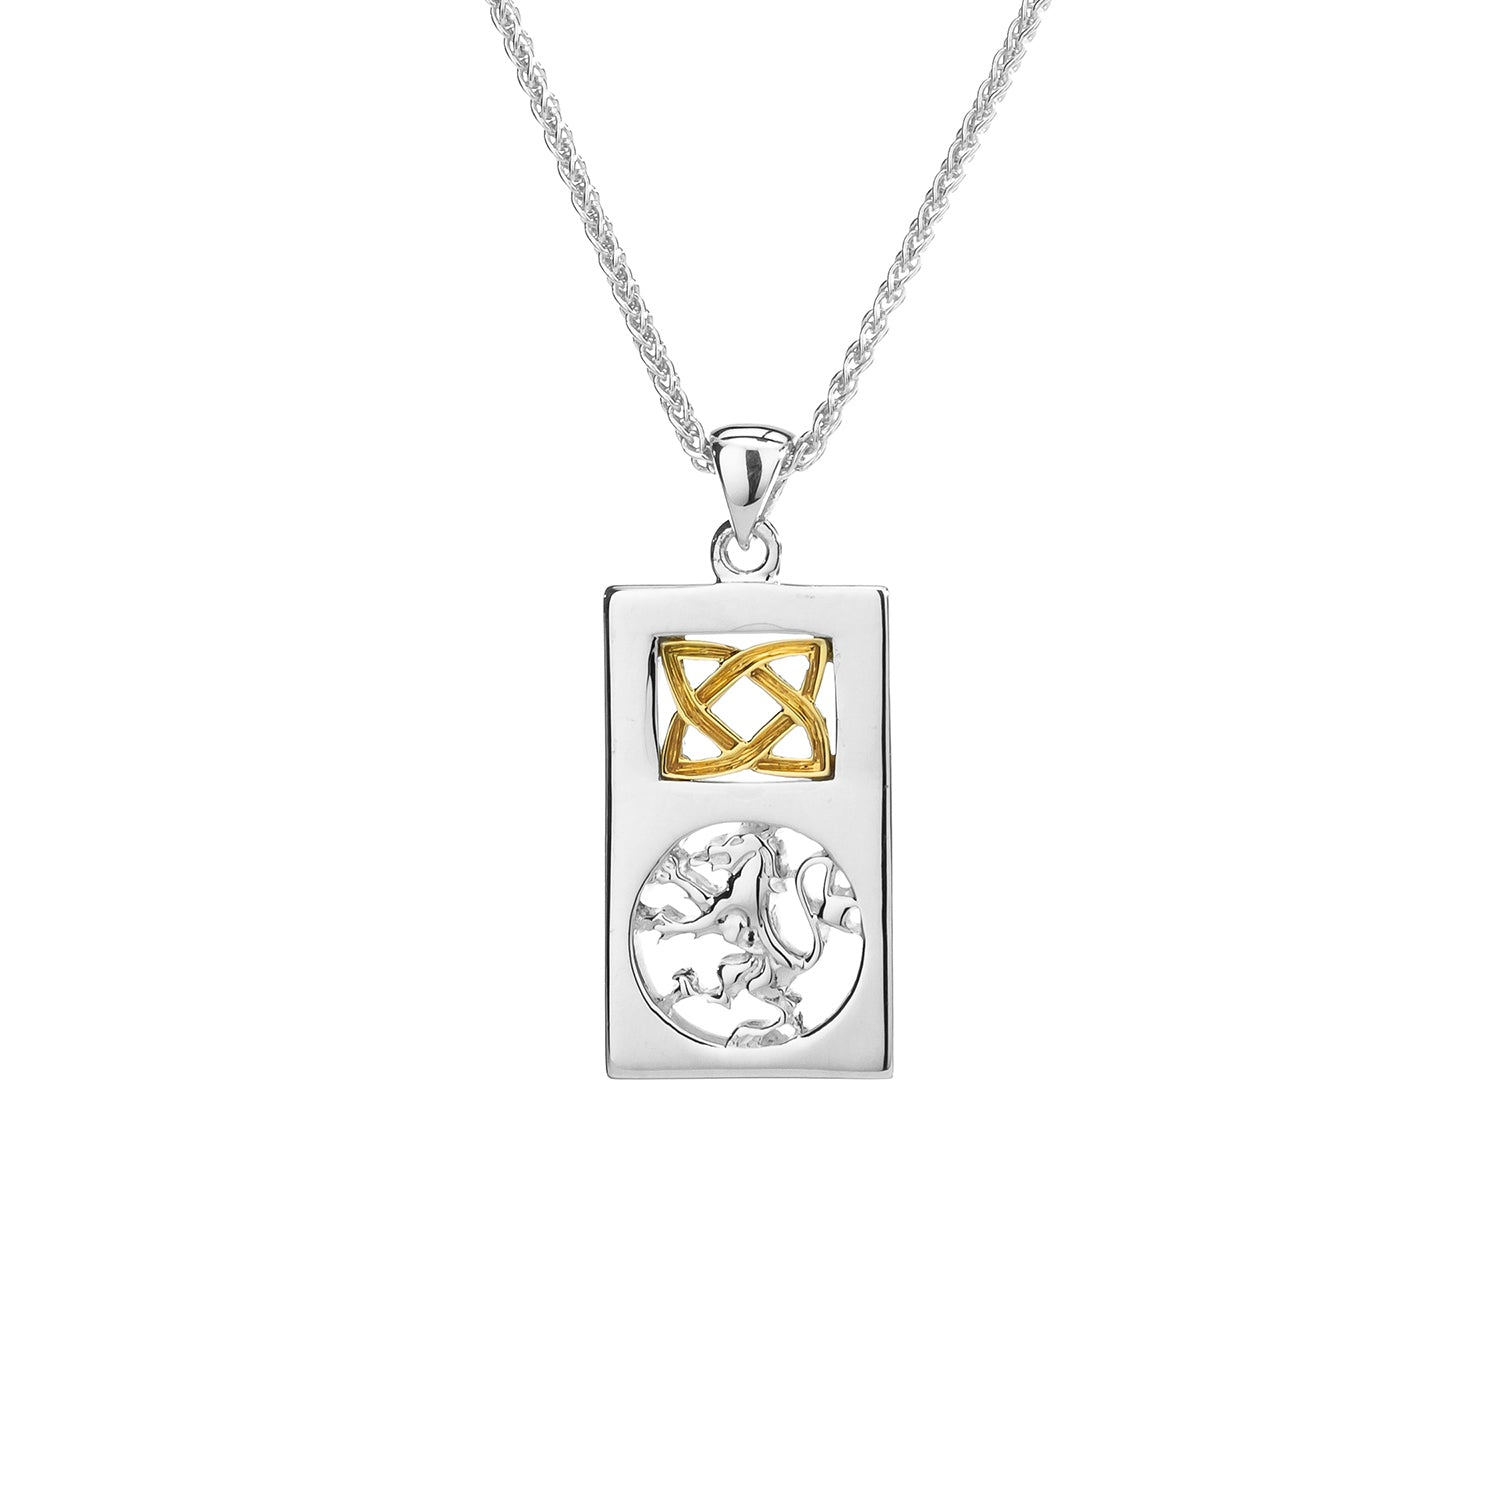 Pendant 10k Lion Rampant Rectangle Small Pendant from welch and company jewelers near syracuse ny